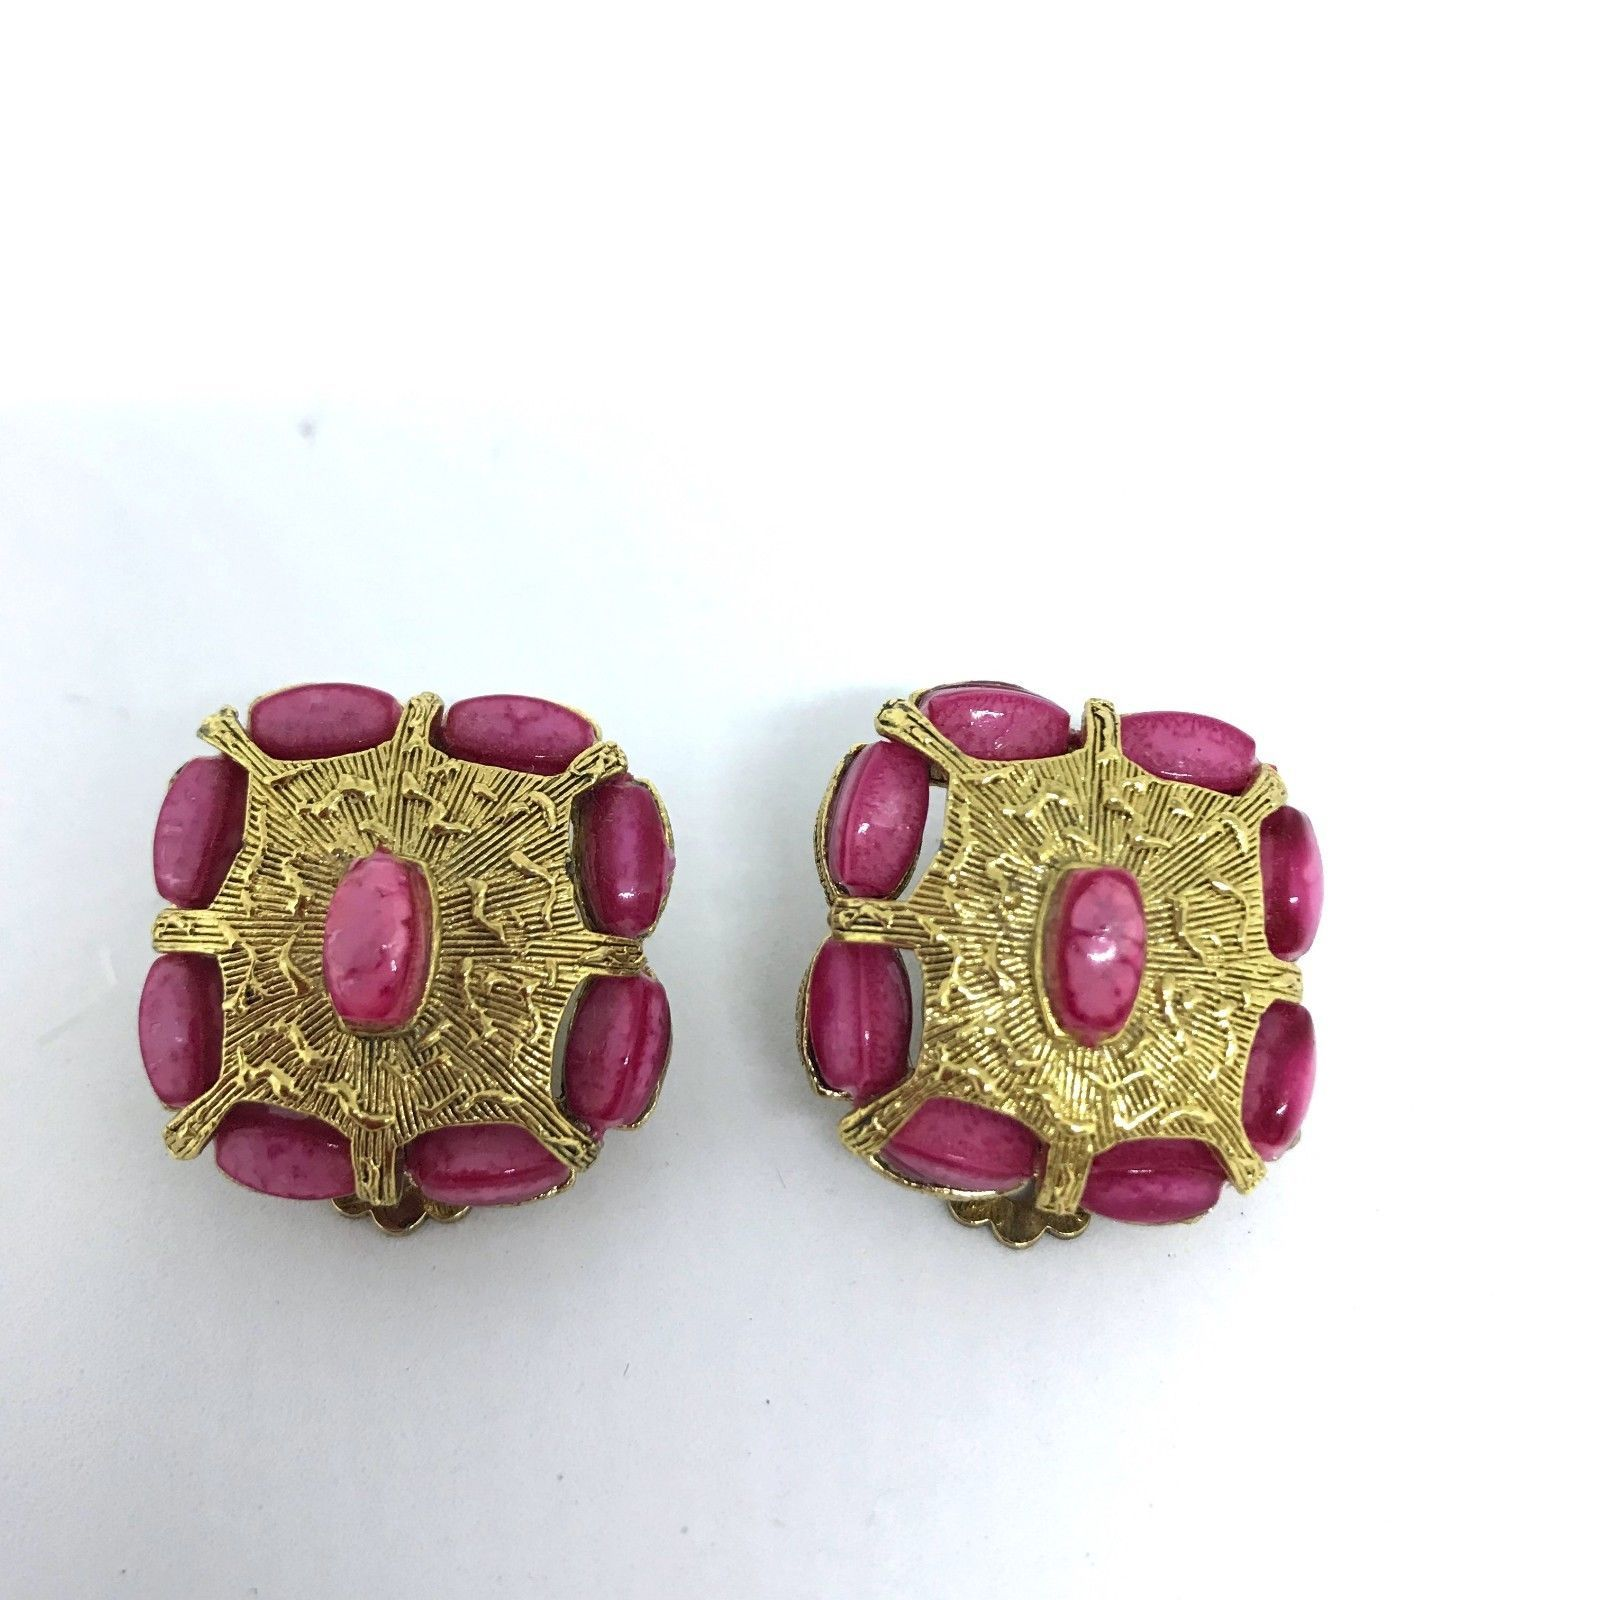 Primary image for Vintage Mid Century Selini Clip-on Earrings Pink and Gold Tone